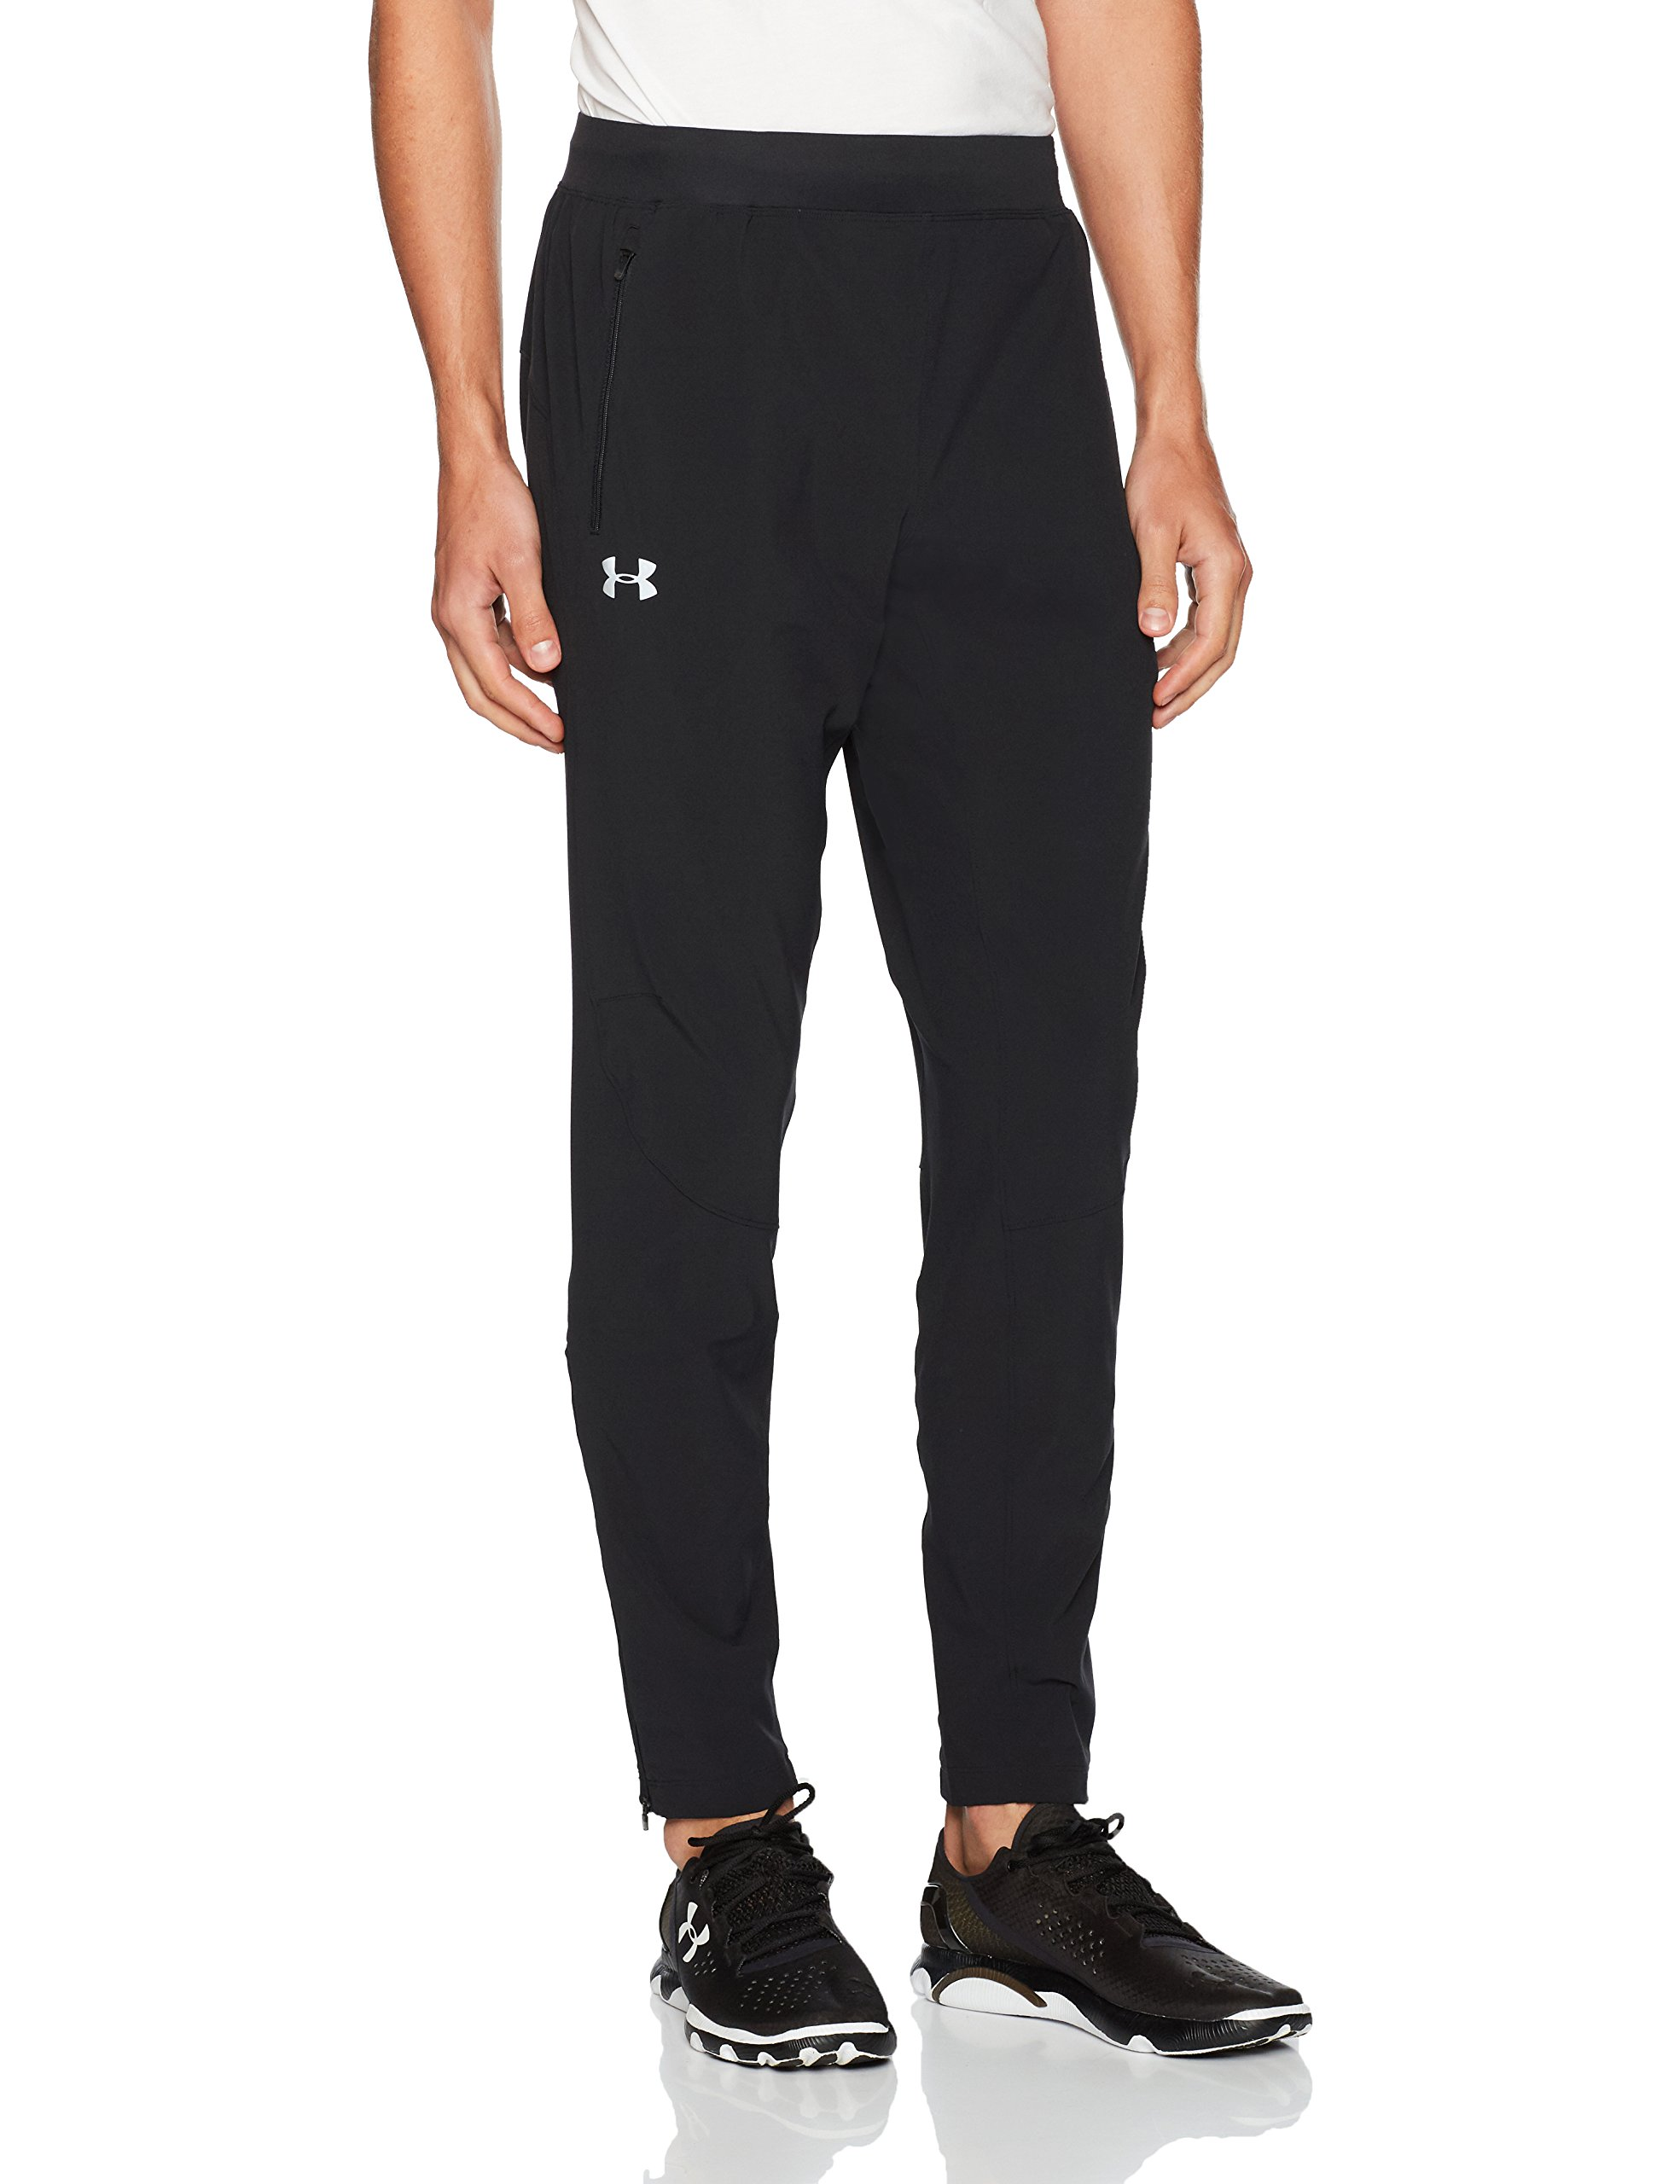 Under Armour Men's Outrun The Storm Pants, Black (001)/Reflective, XX-Large by Under Armour (Image #1)